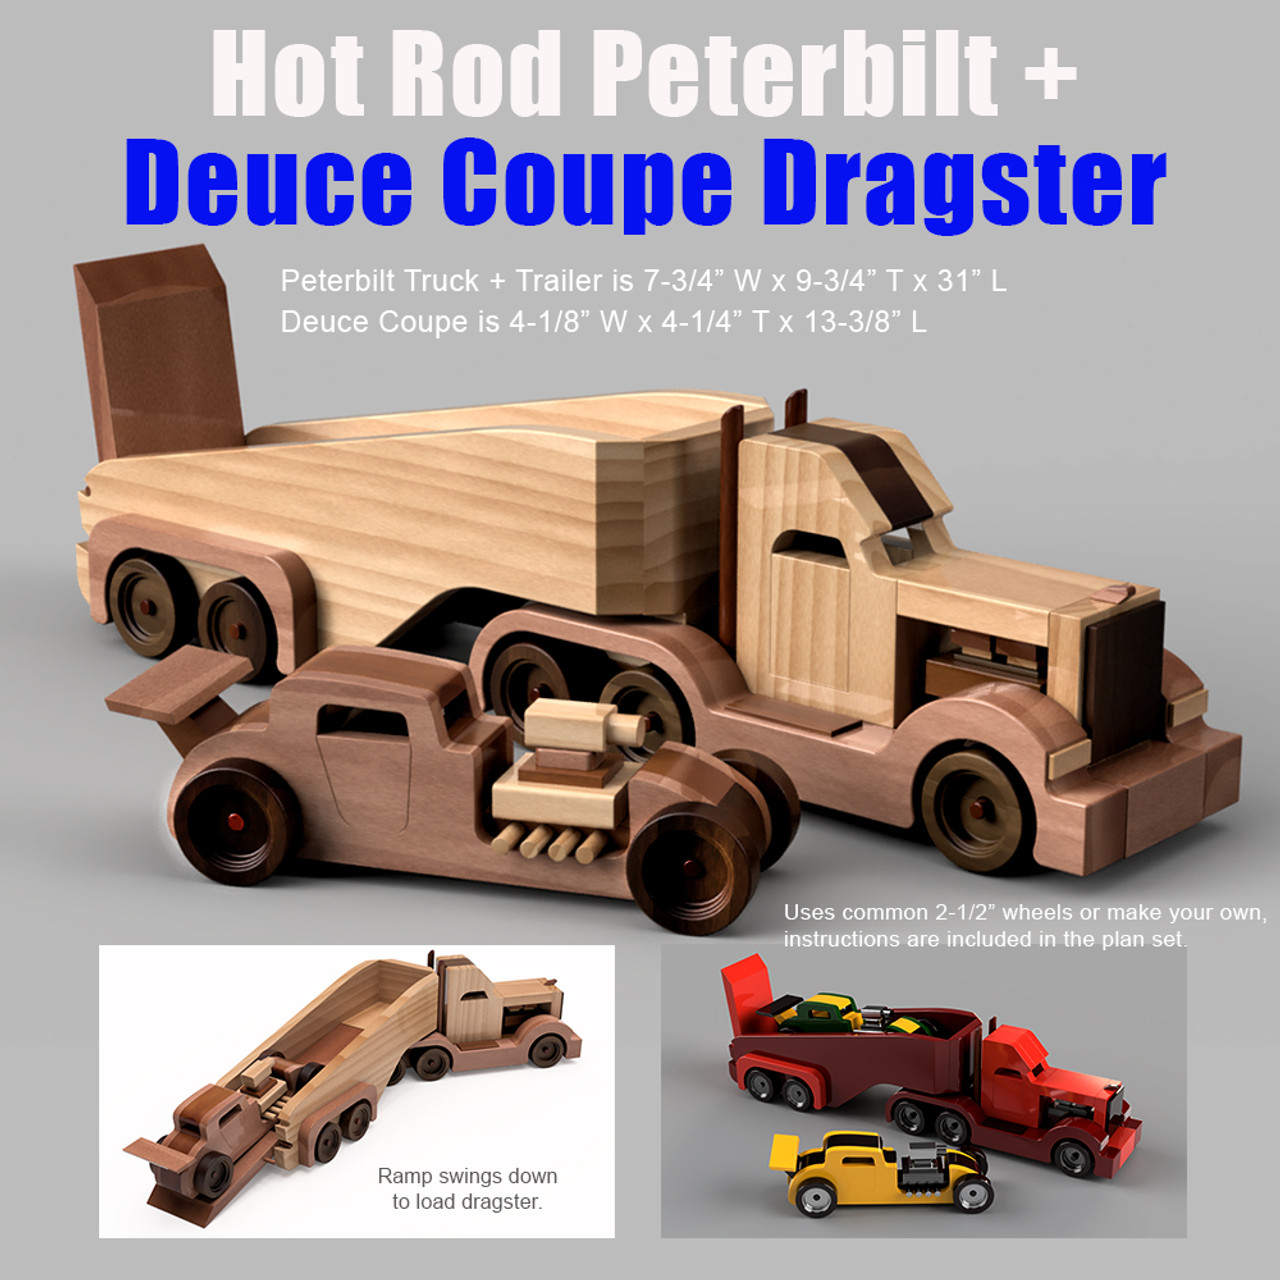 Hot Rod Peterbilt + Deuce Coupe Dragster Wood Toy Plans (3 PDF Downloads)